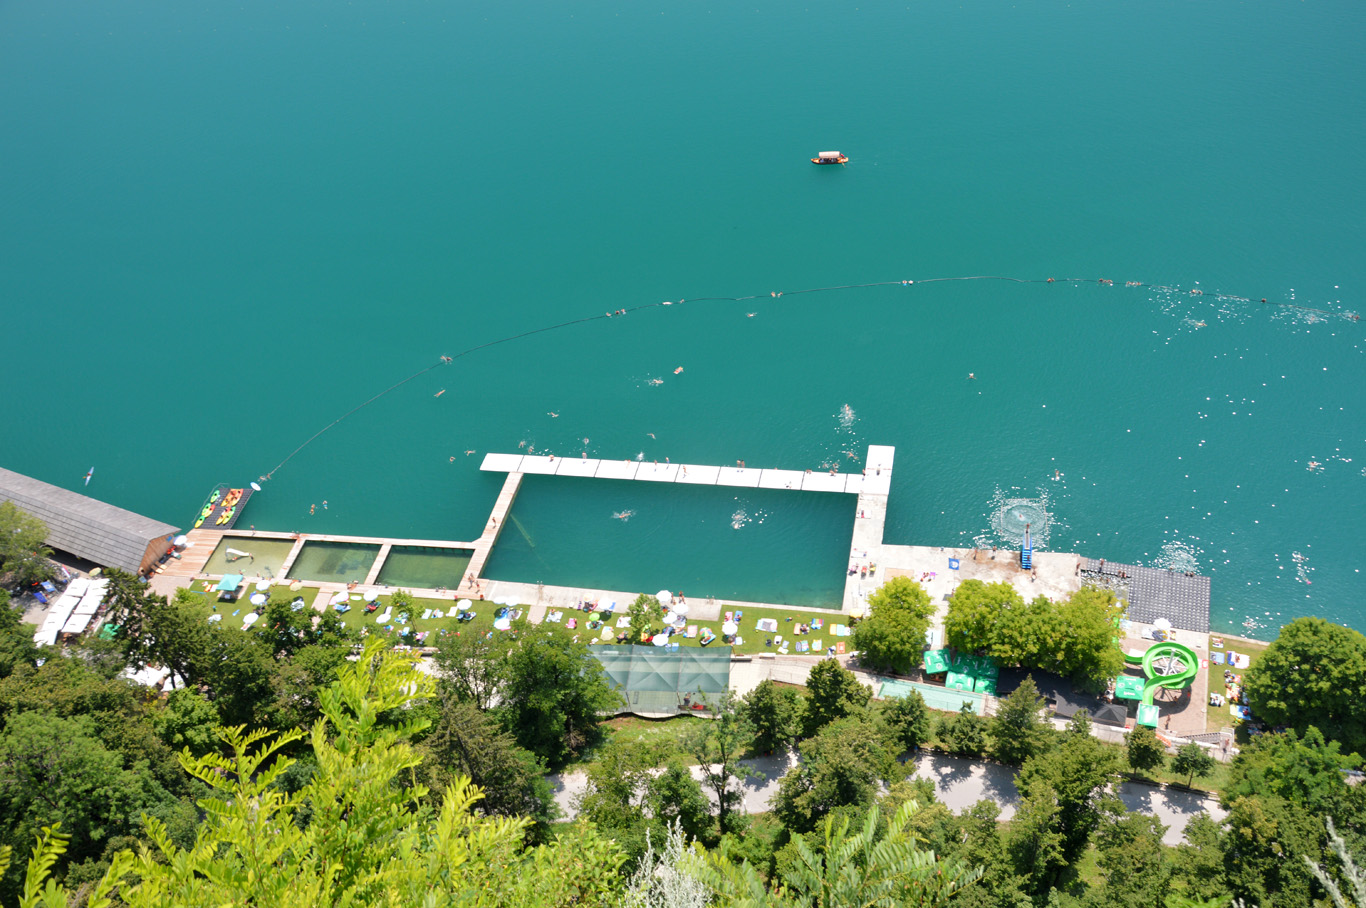 Natural swimming pools in Bled